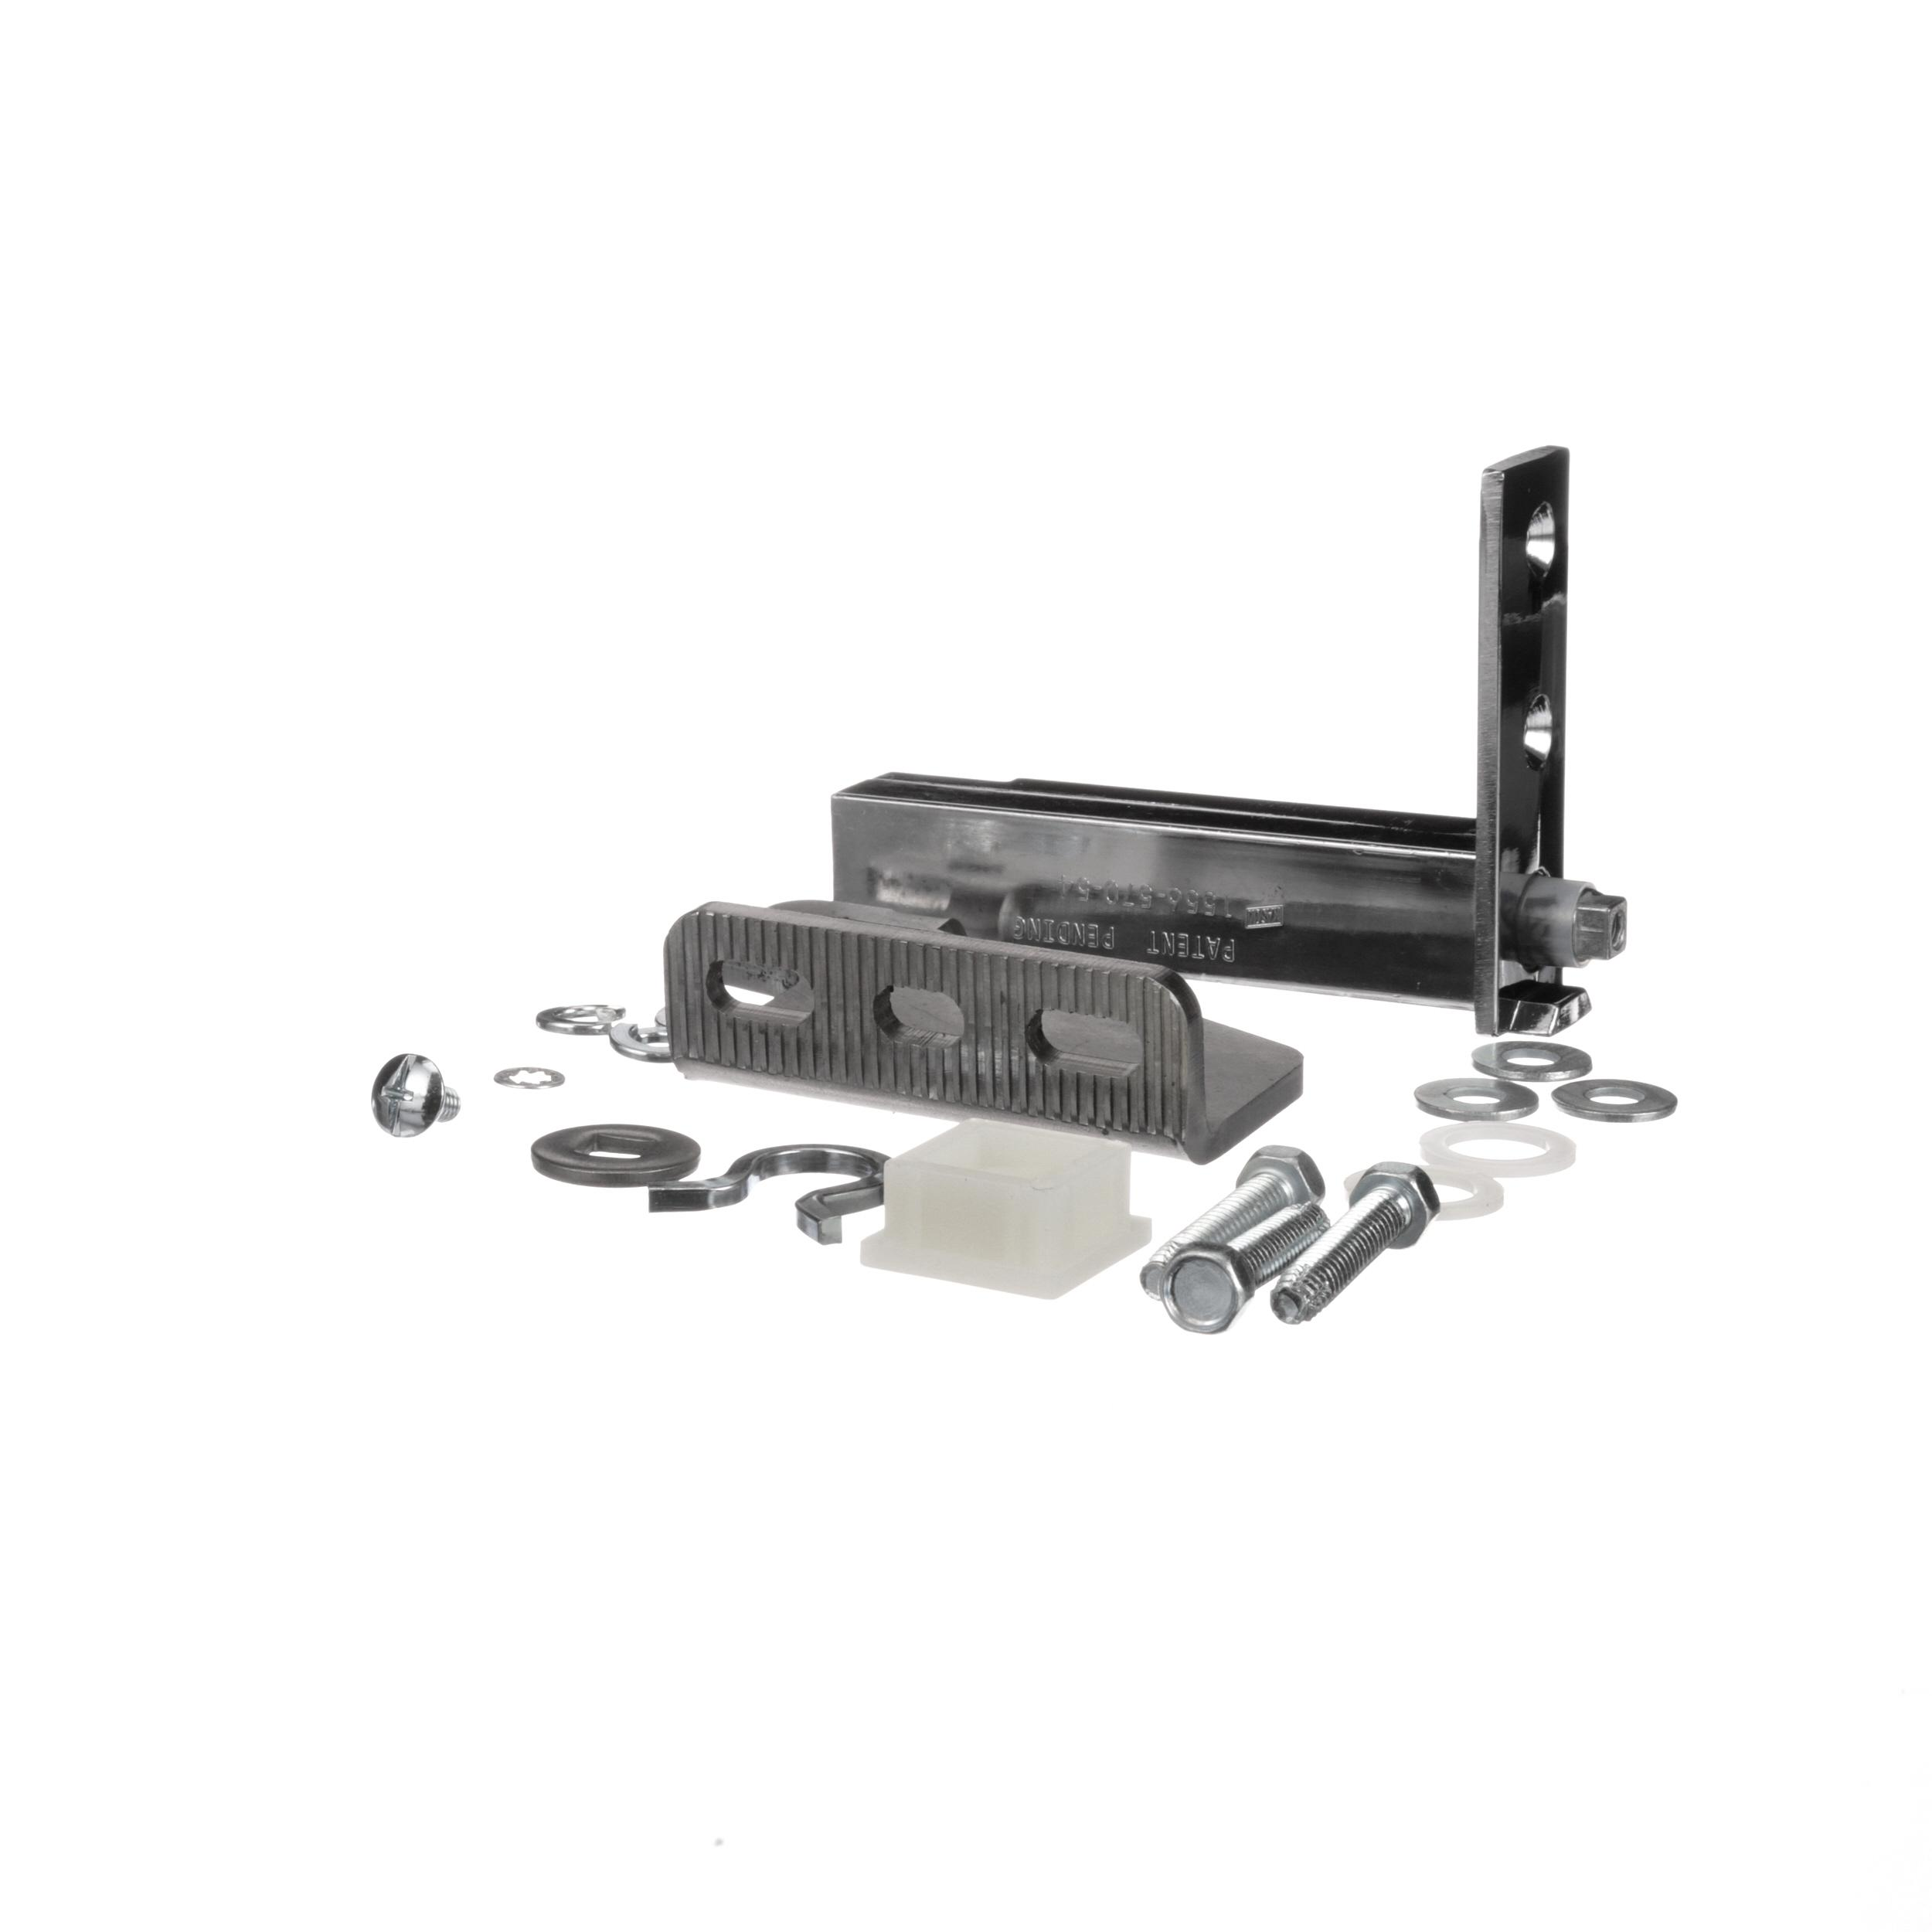 TRUE HINGE KIT, DOOR BTM LH